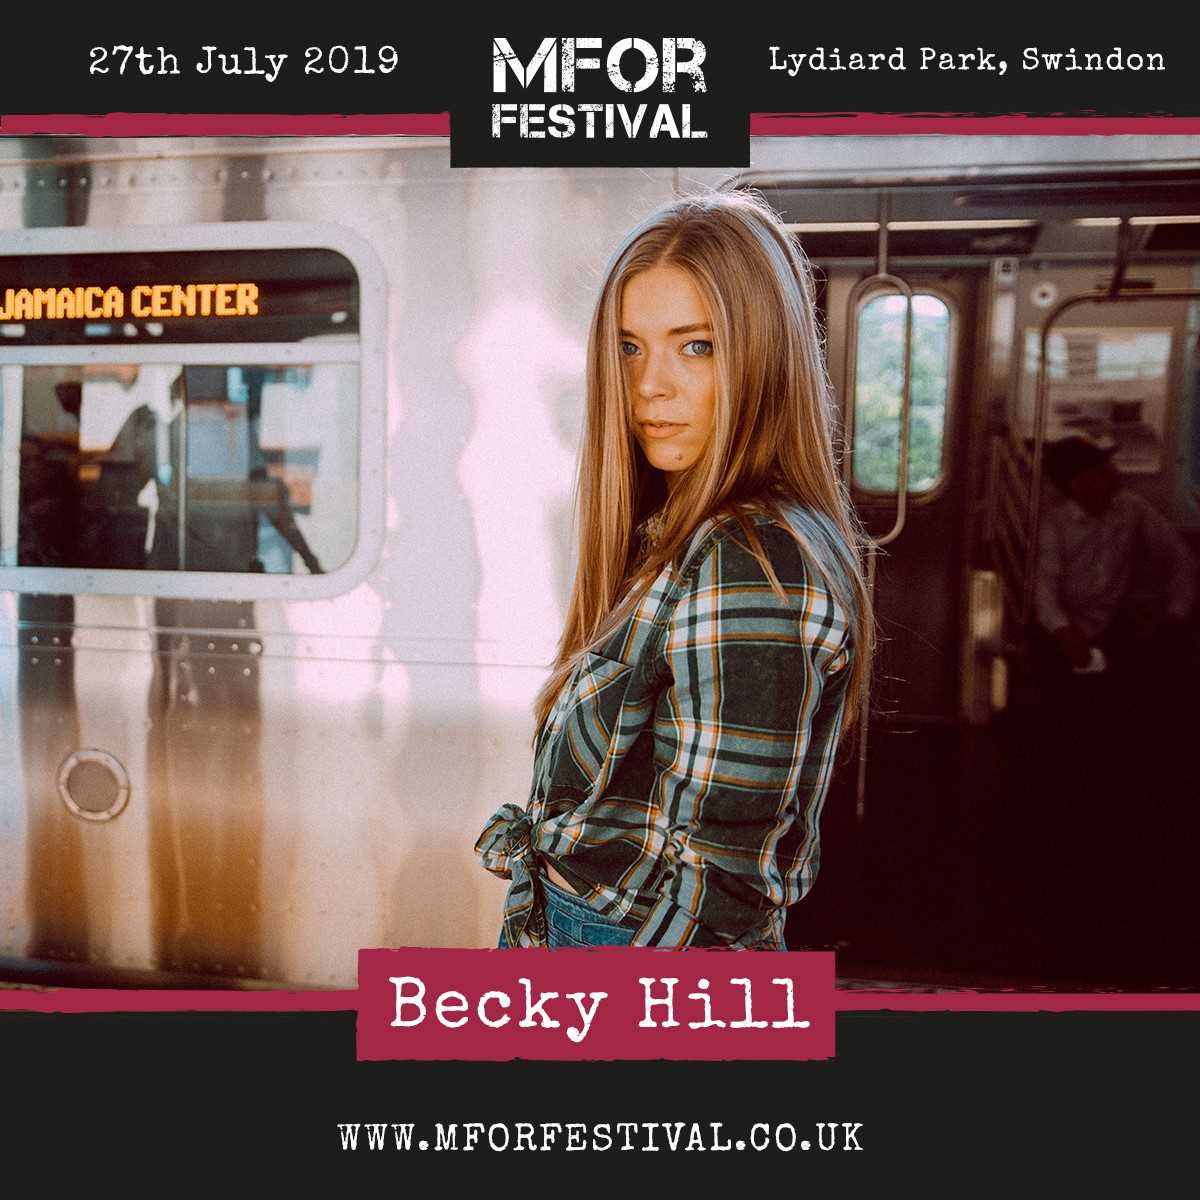 Becky Hill Announced to perform at MFOR Festival!